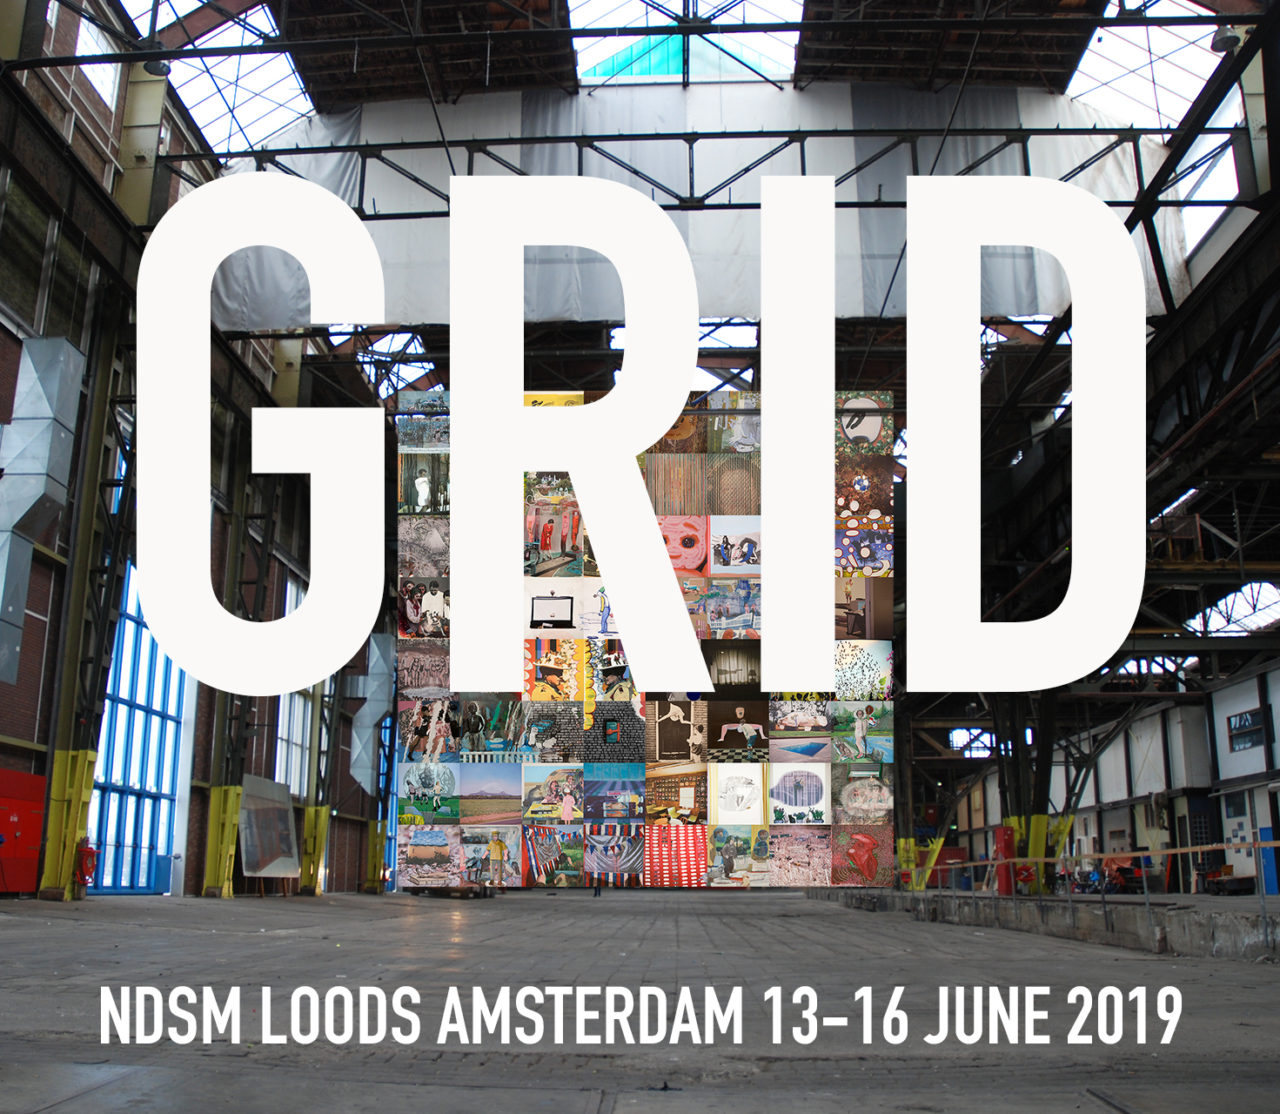 Robert_Smit_GRID_Exhibition_NDSM_Loods_Amsterdam_13_t_m_16_June_2019